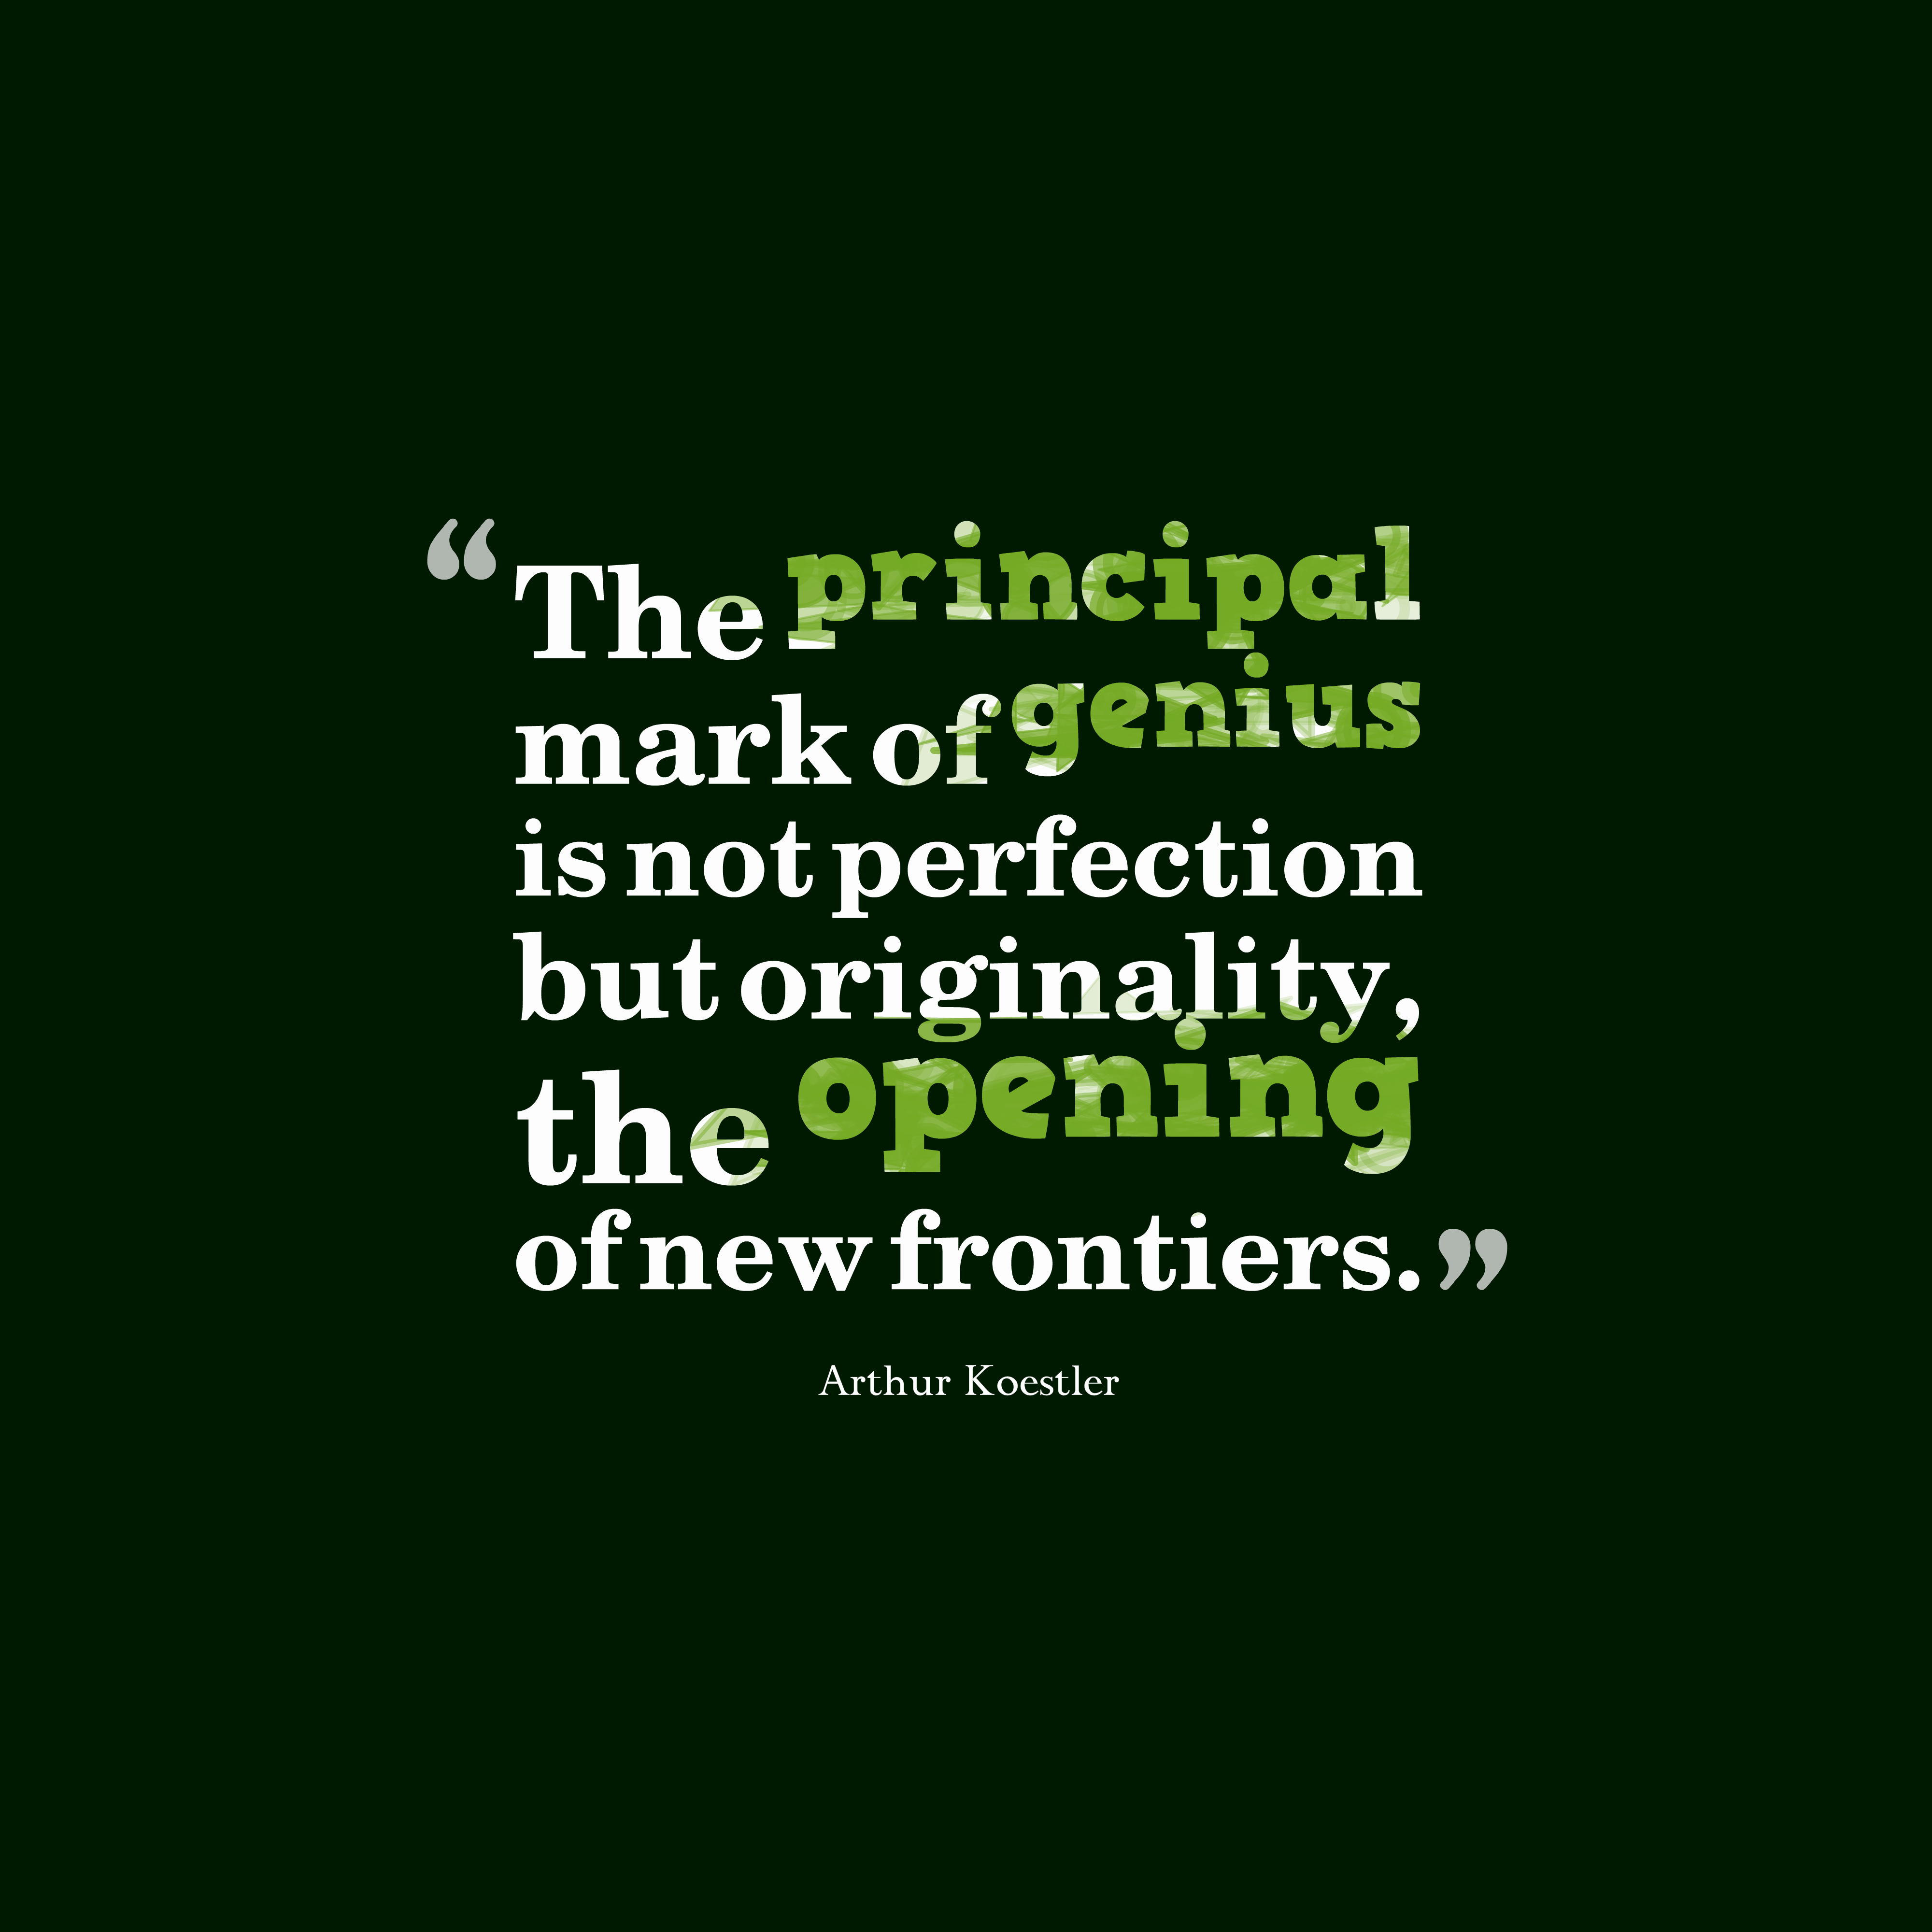 Quotes image of The principal mark of genius is not perfection but originality, the opening of new frontiers.